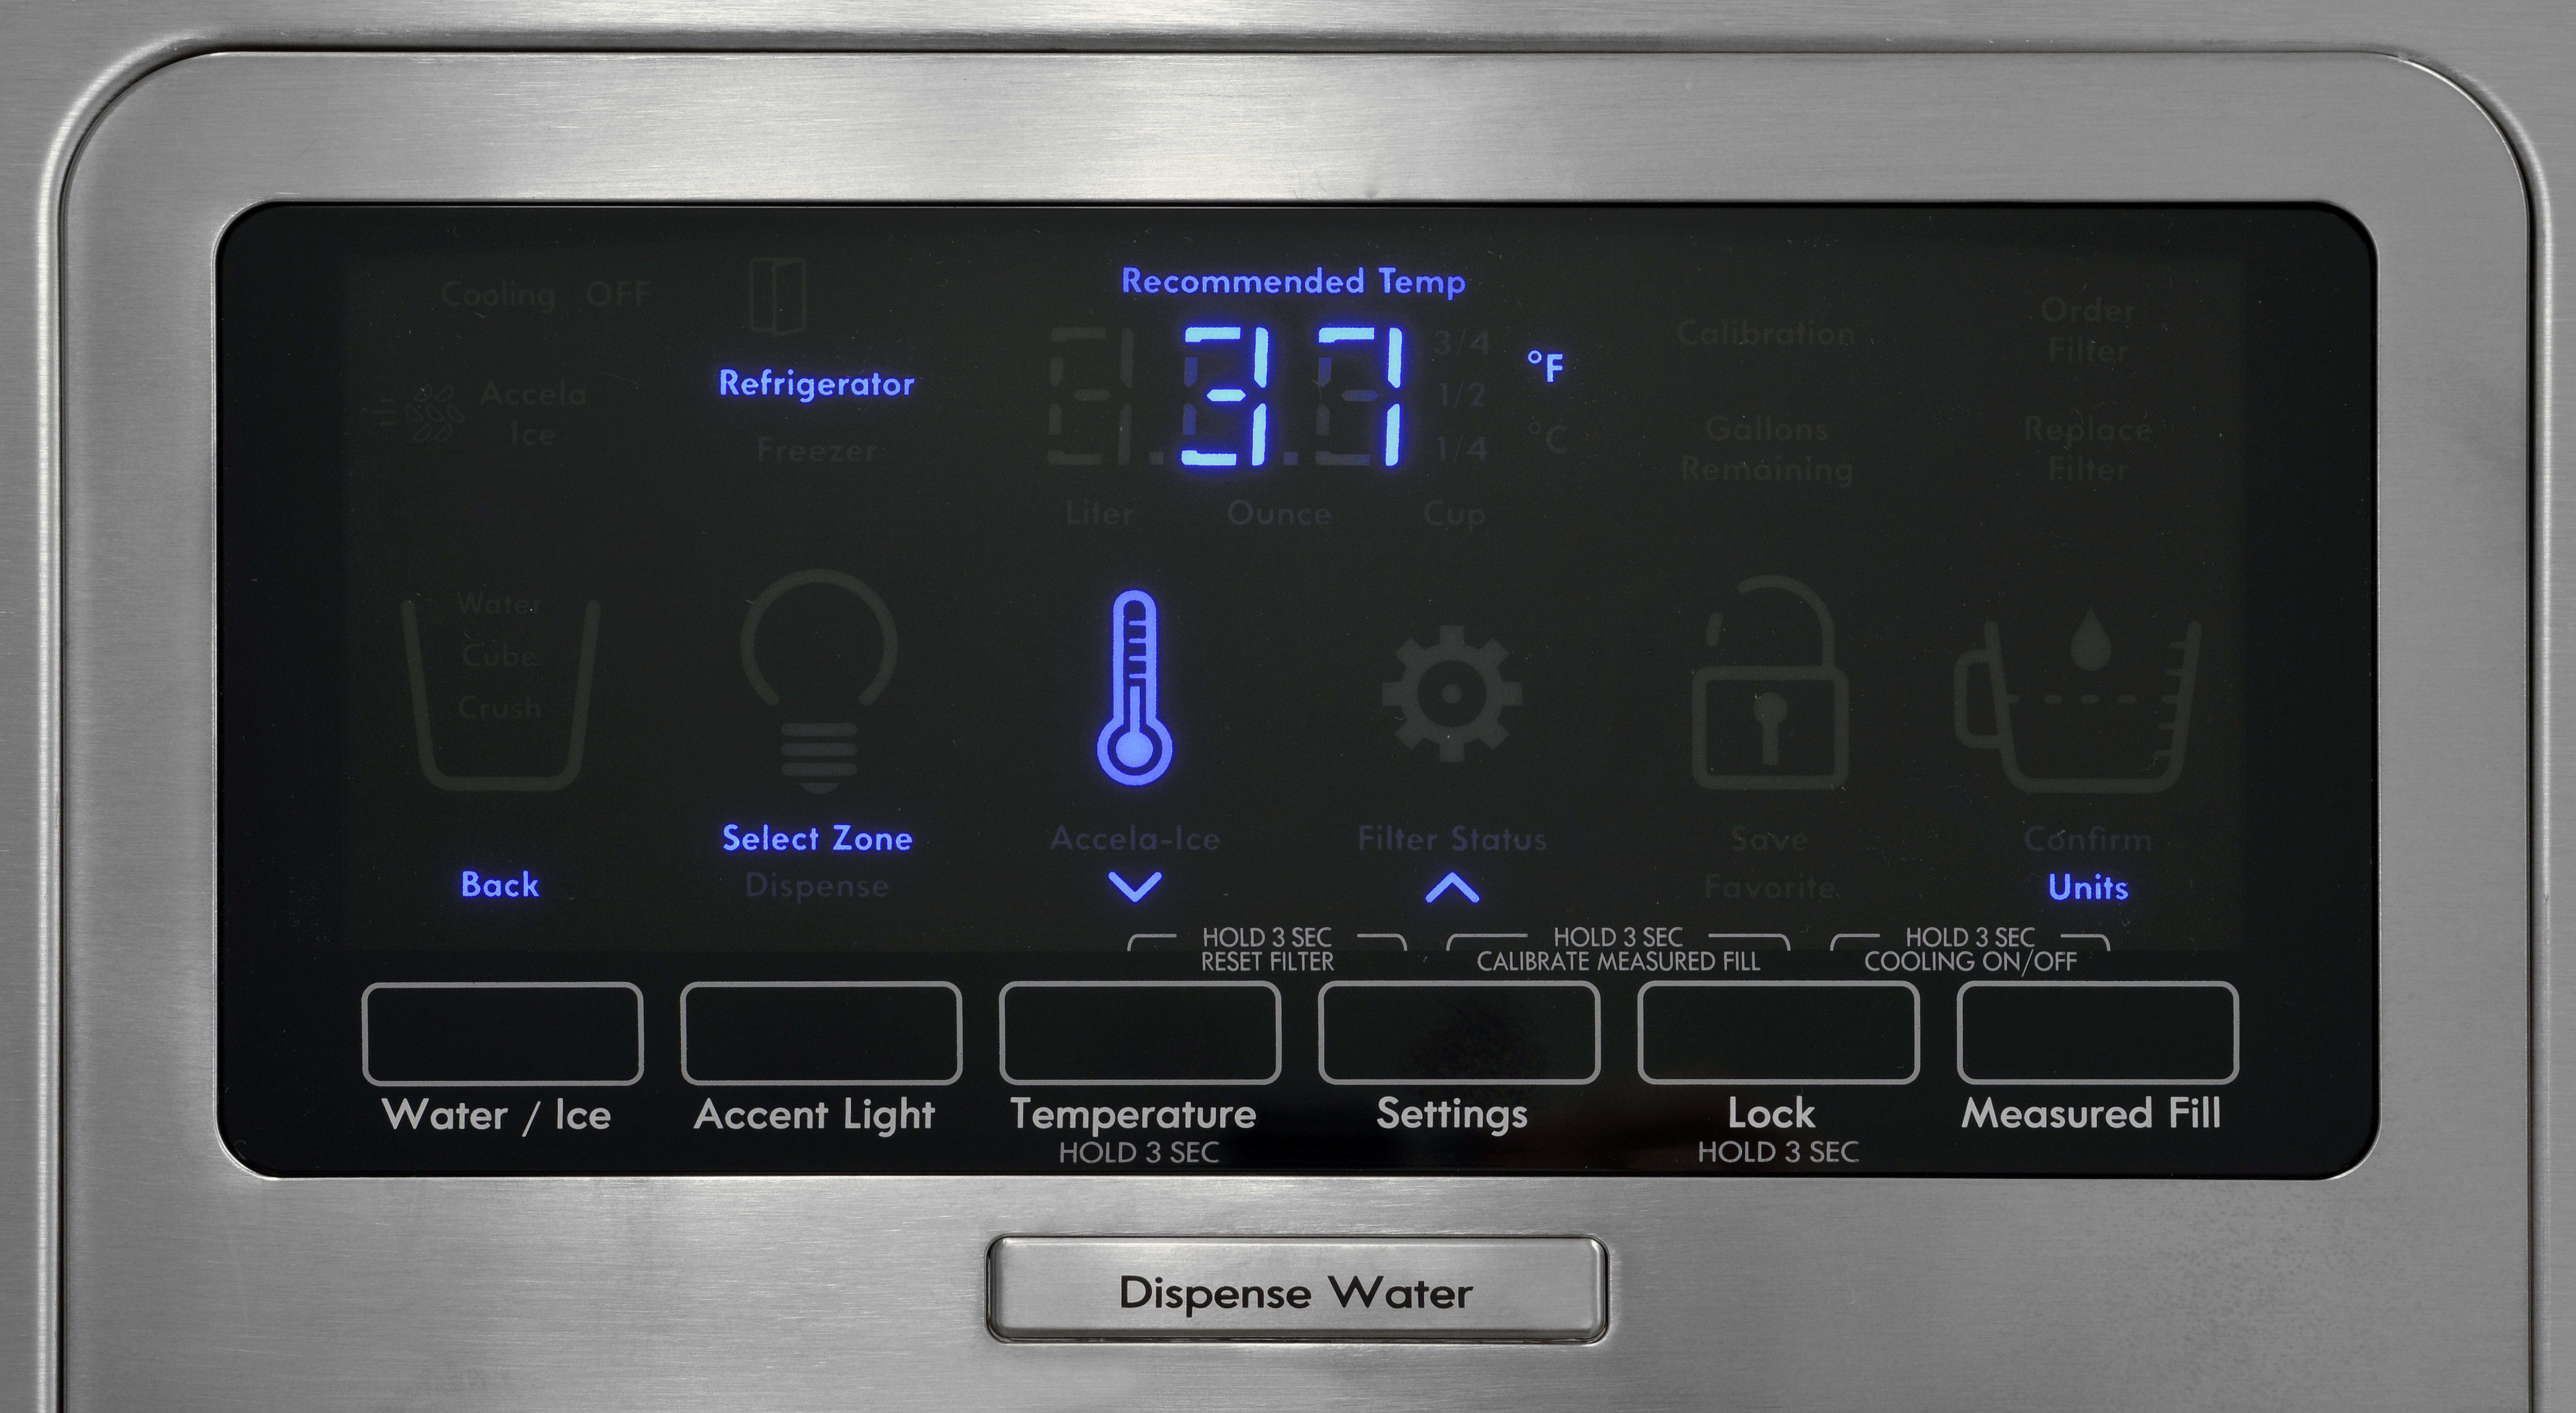 The Kenmore Elite 51773's controls are responsive, but require some digging to access all the features.